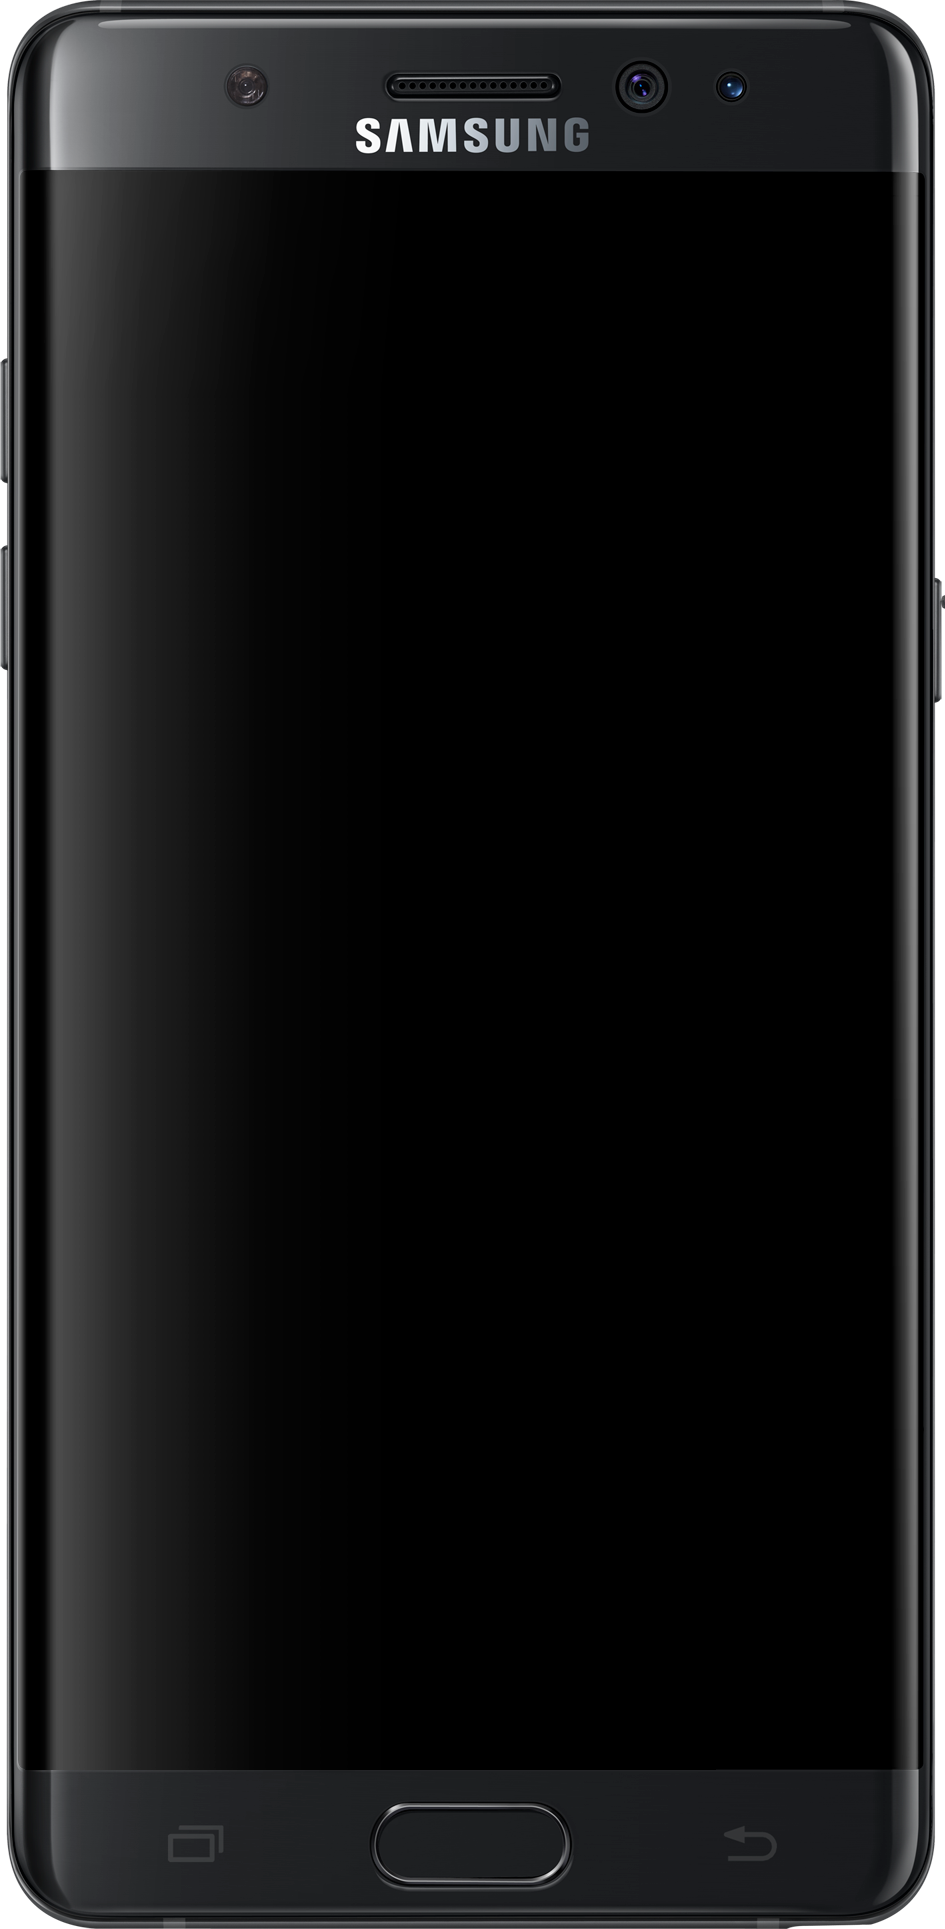 Samsung Galaxy Note 7 - Wikipedia